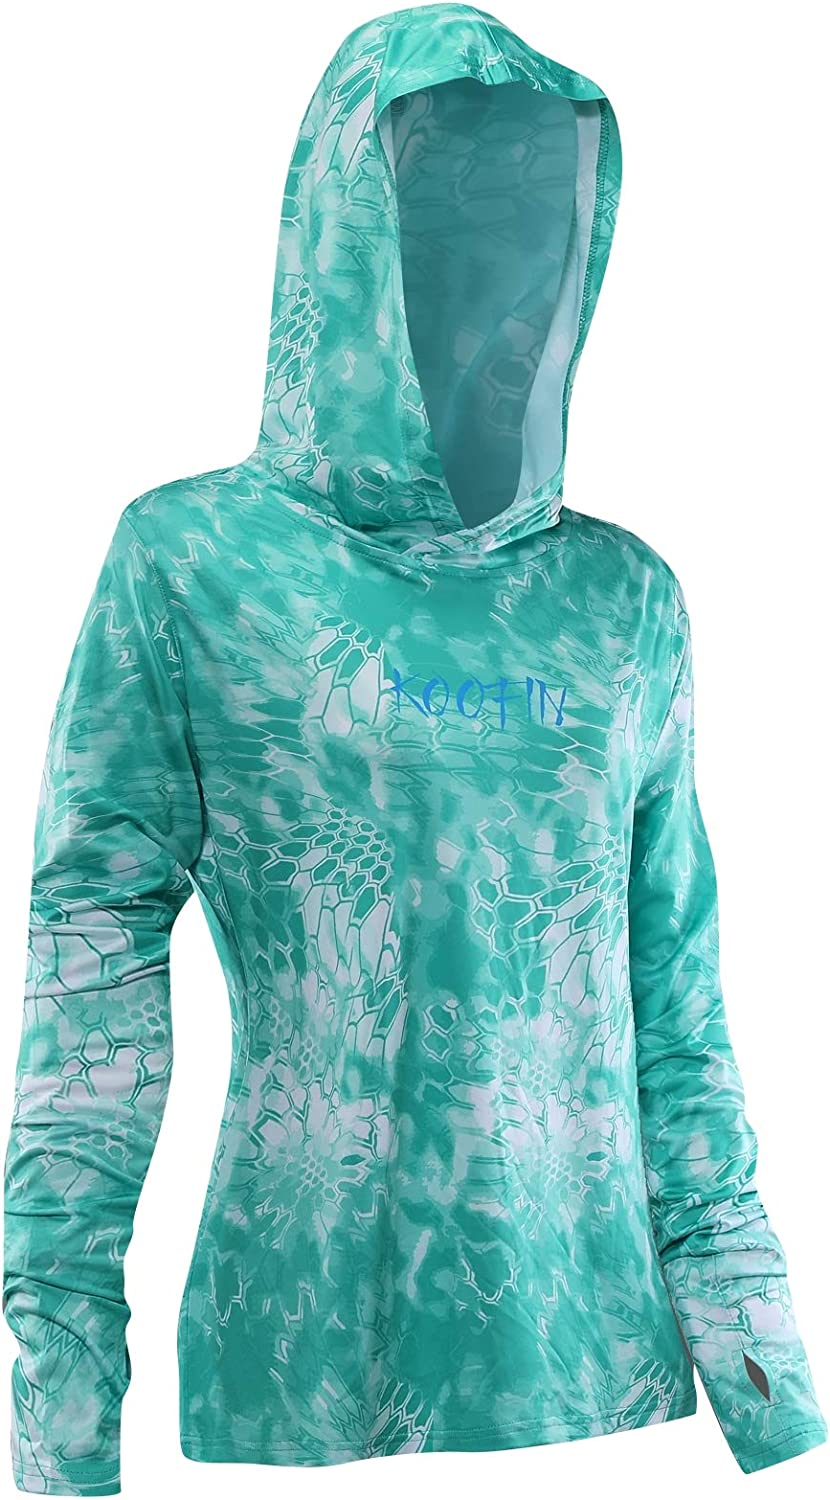 KOOFIN GEAR Performance Fishing Hoodie Women's Long Sleeve Hooded Sunshirt Quick-Dry UPF50